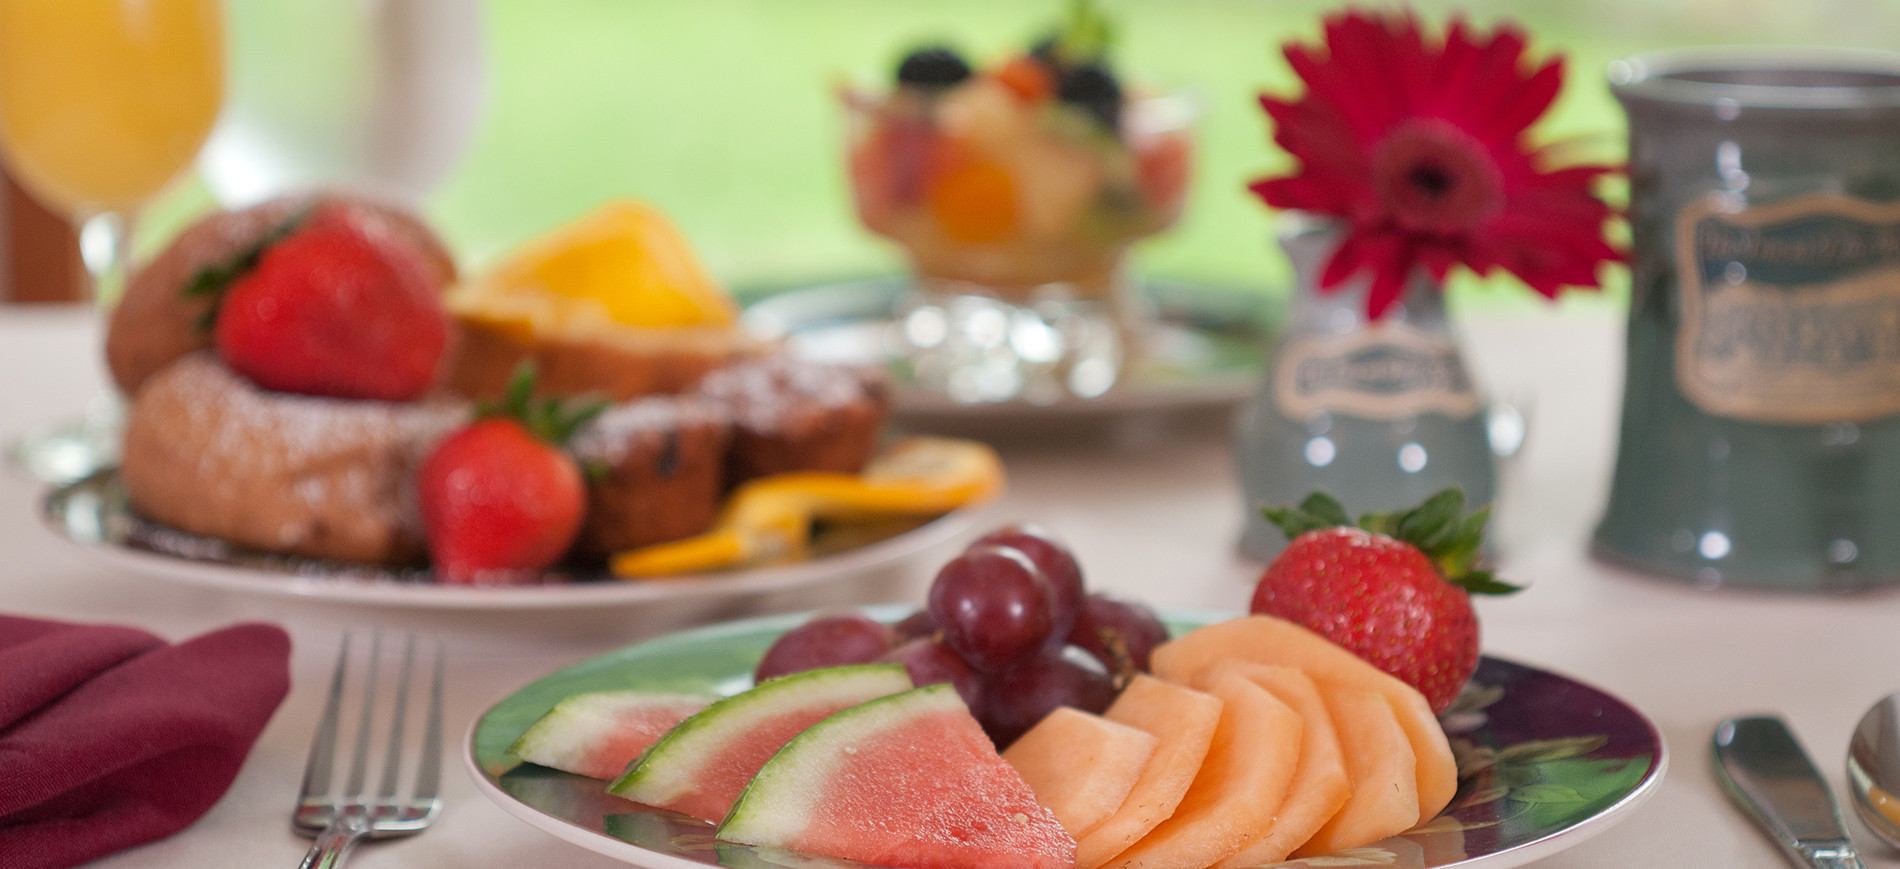 OJ, plate of muffins with strawberries, melon & grape plate in front, fruit cup at rear, vase with red gerber daisy, coffee mug